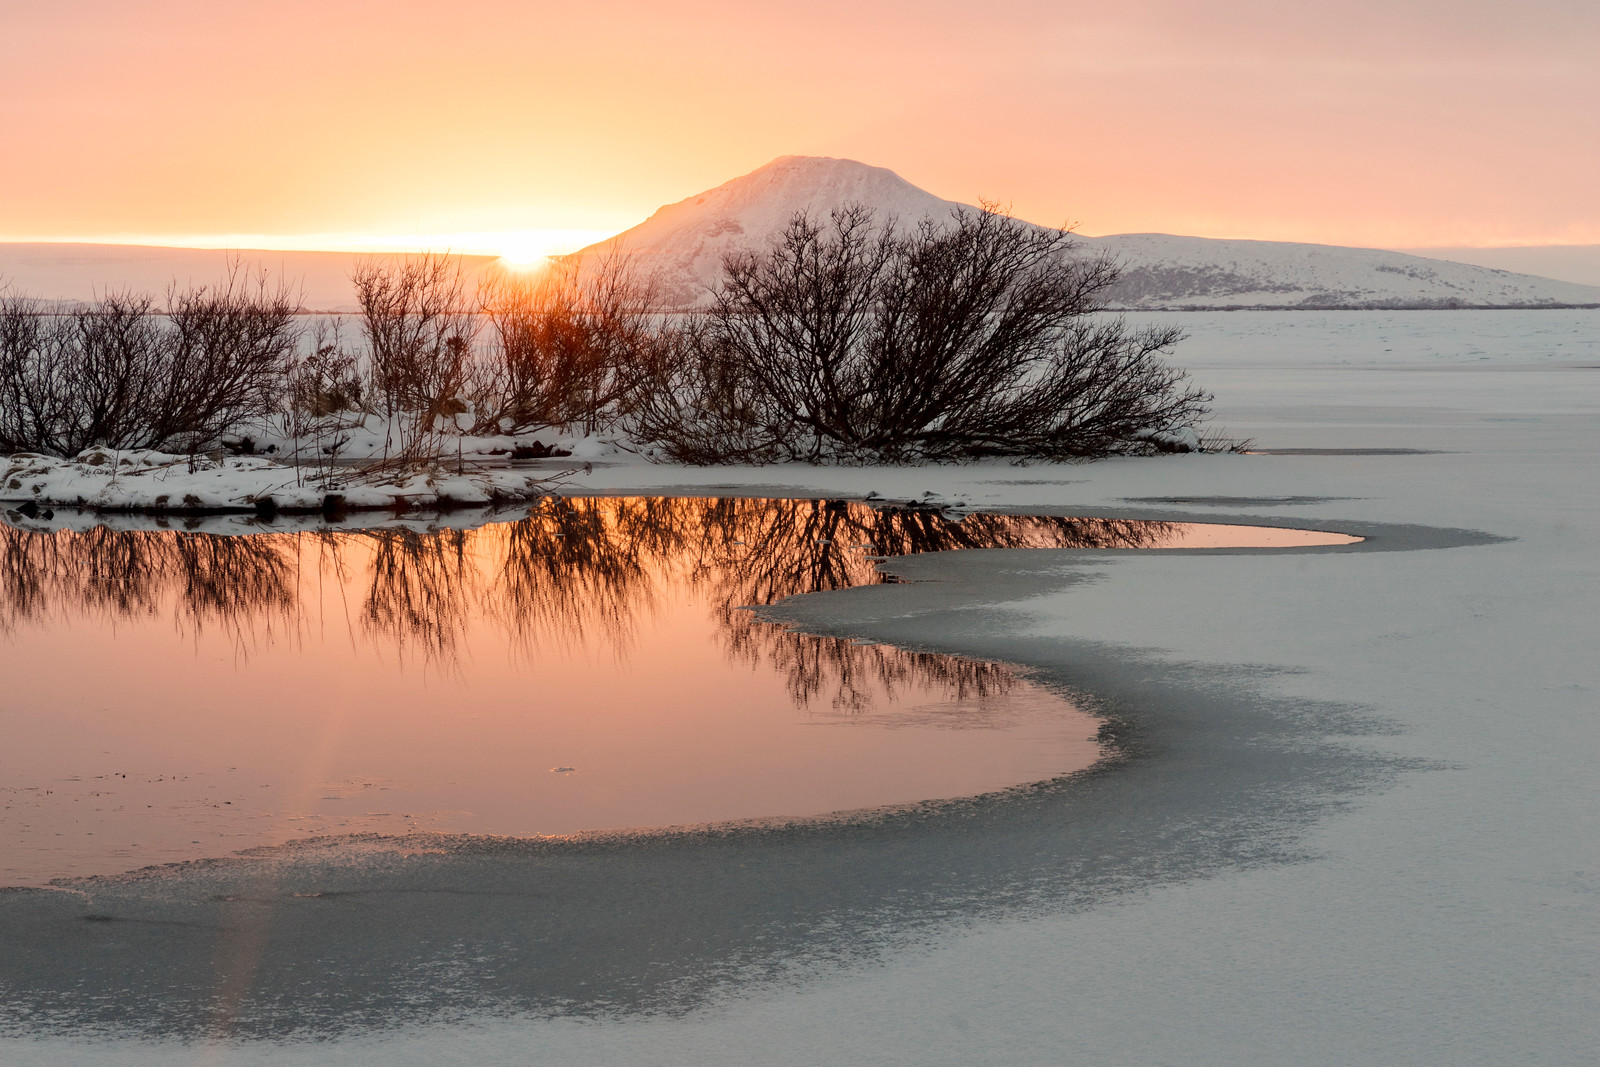 With beautiful warmm colors on a frozen landscape